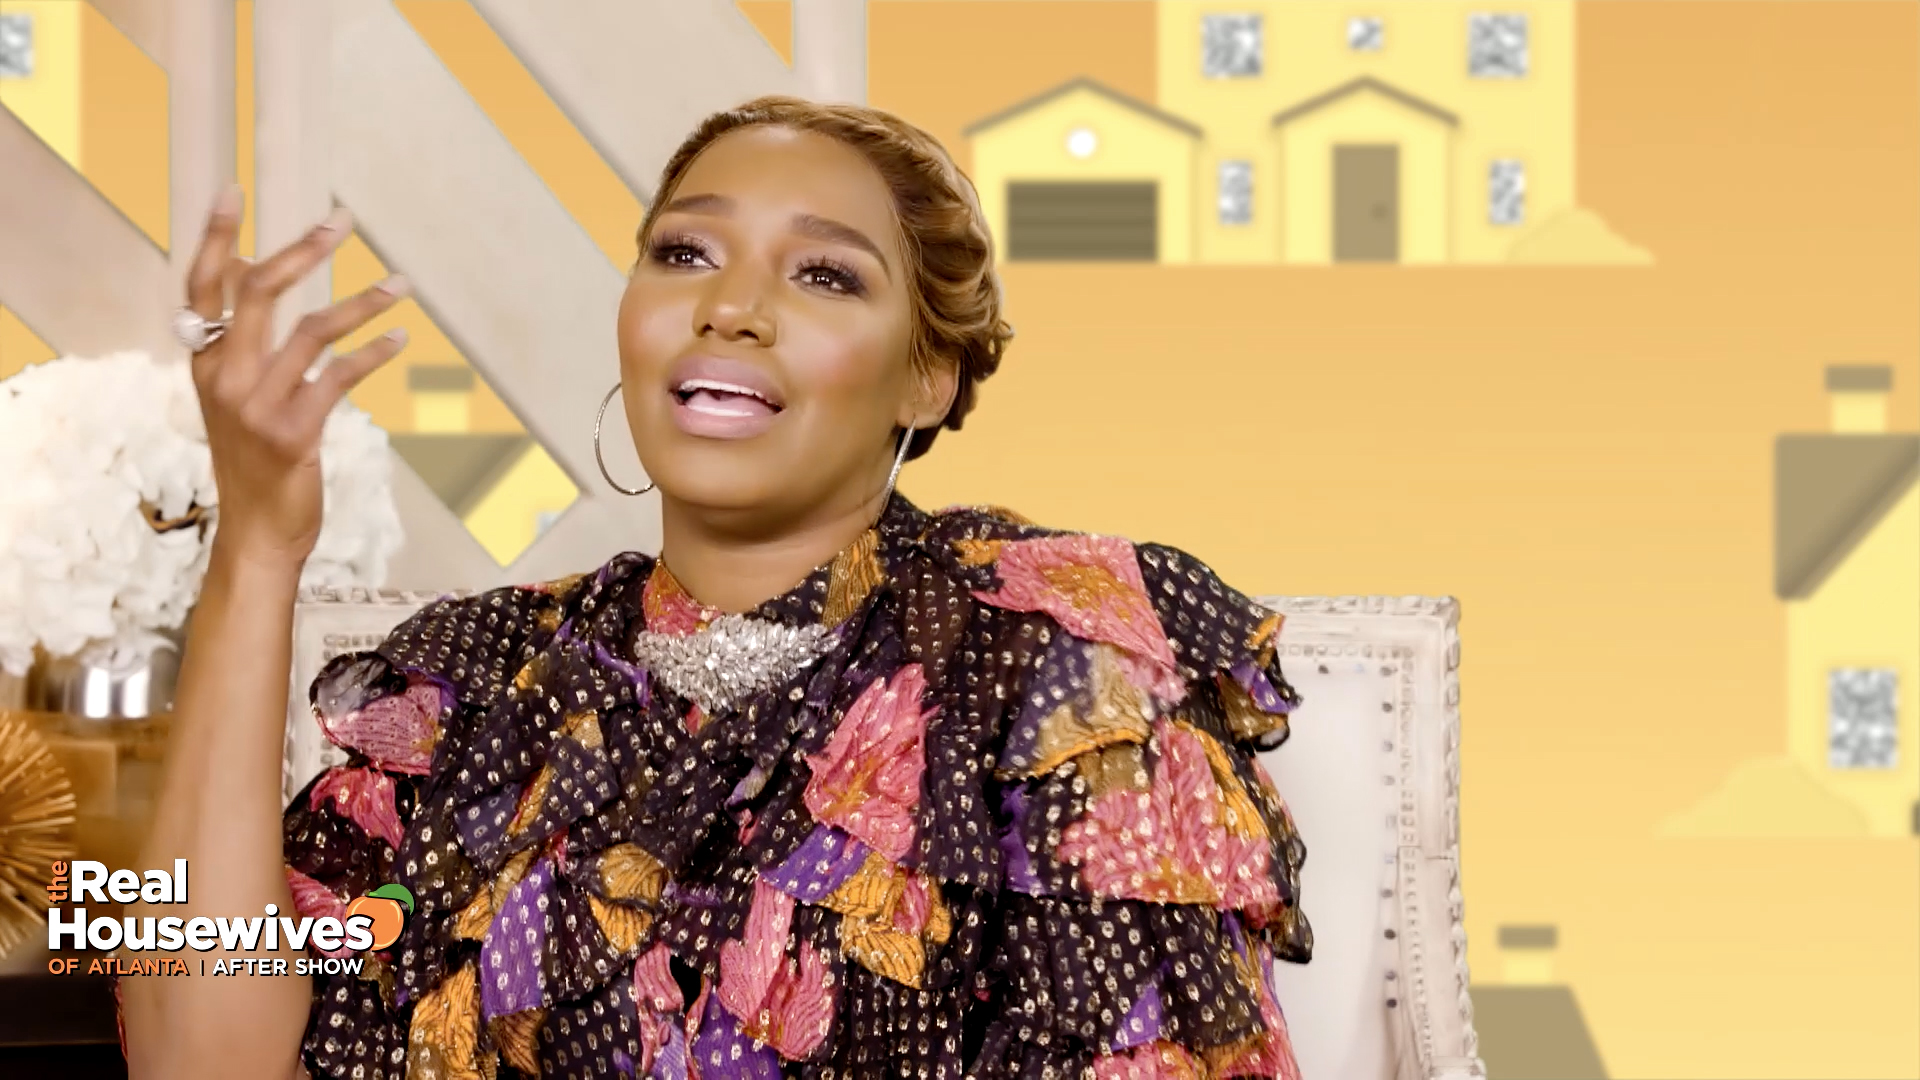 Was Nene Leakes Hiding Something in Her Closet?